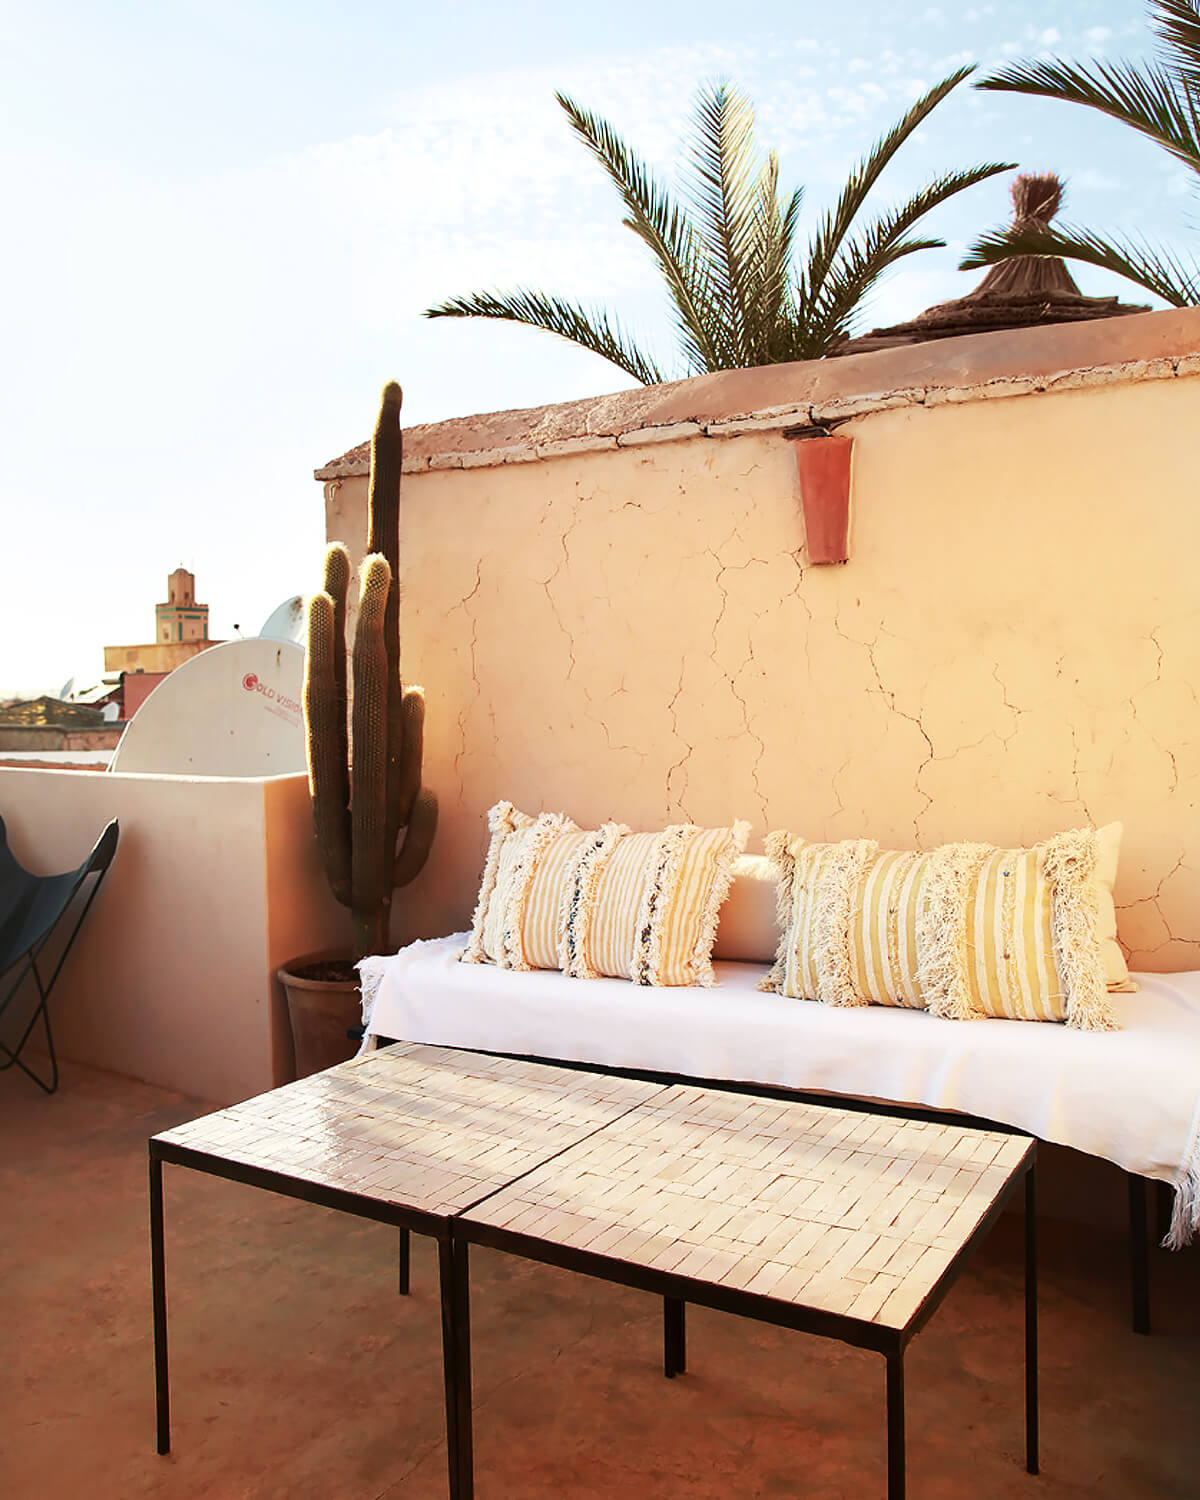 Dar Kawa - Medina, Marrakech & High Atlas Mountains, Morocco | small luxury hotels, boutique hotels